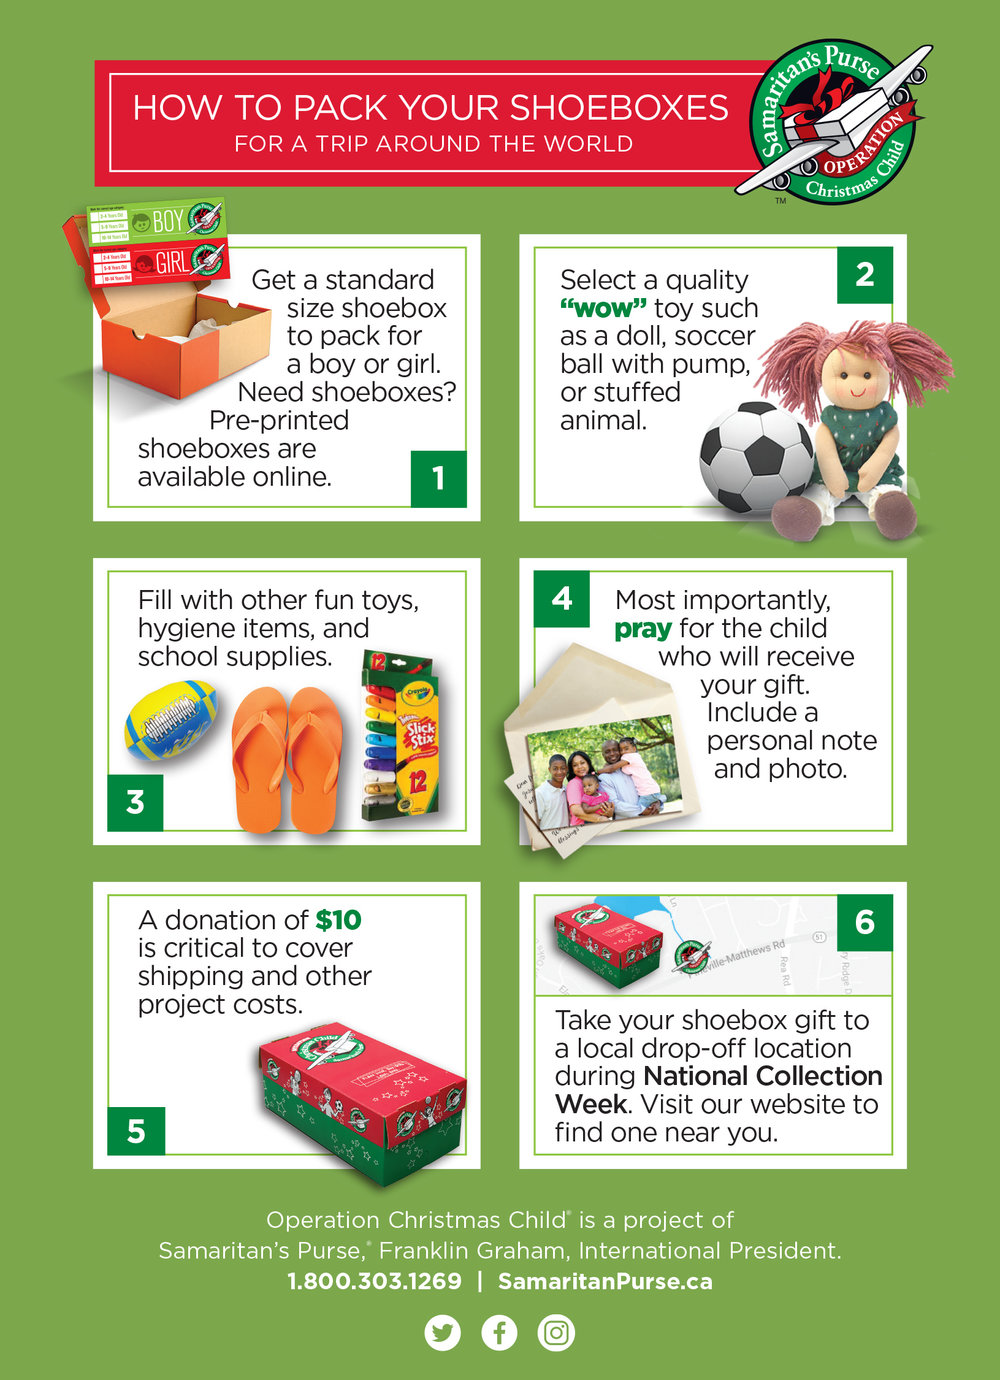 How to pack your shoeboxes